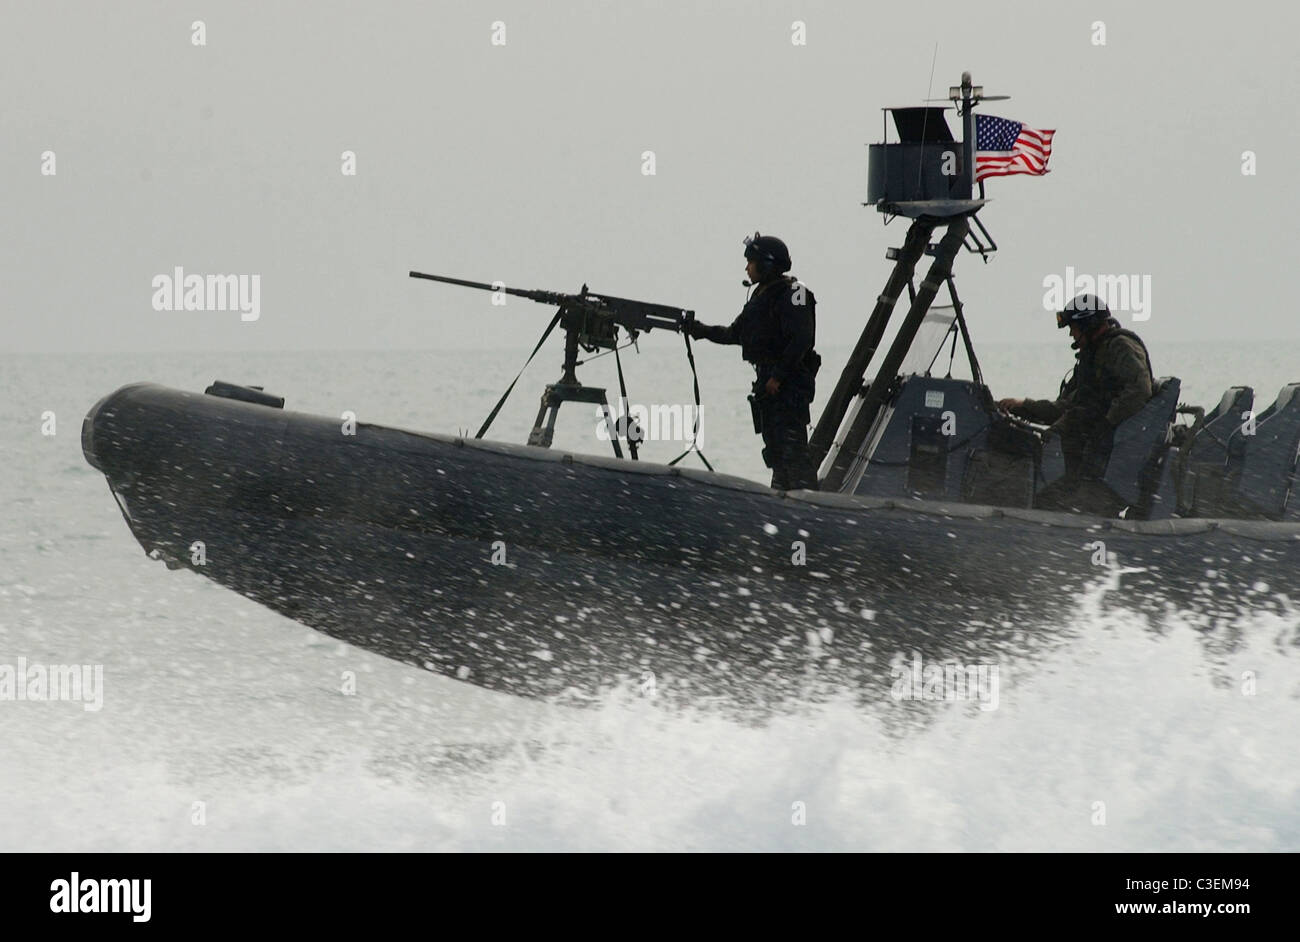 Naval Special Warfare combatant craft crewmen, SEALS operate a Rigid Hull Inflatable Boat from a forward location. - Stock Image